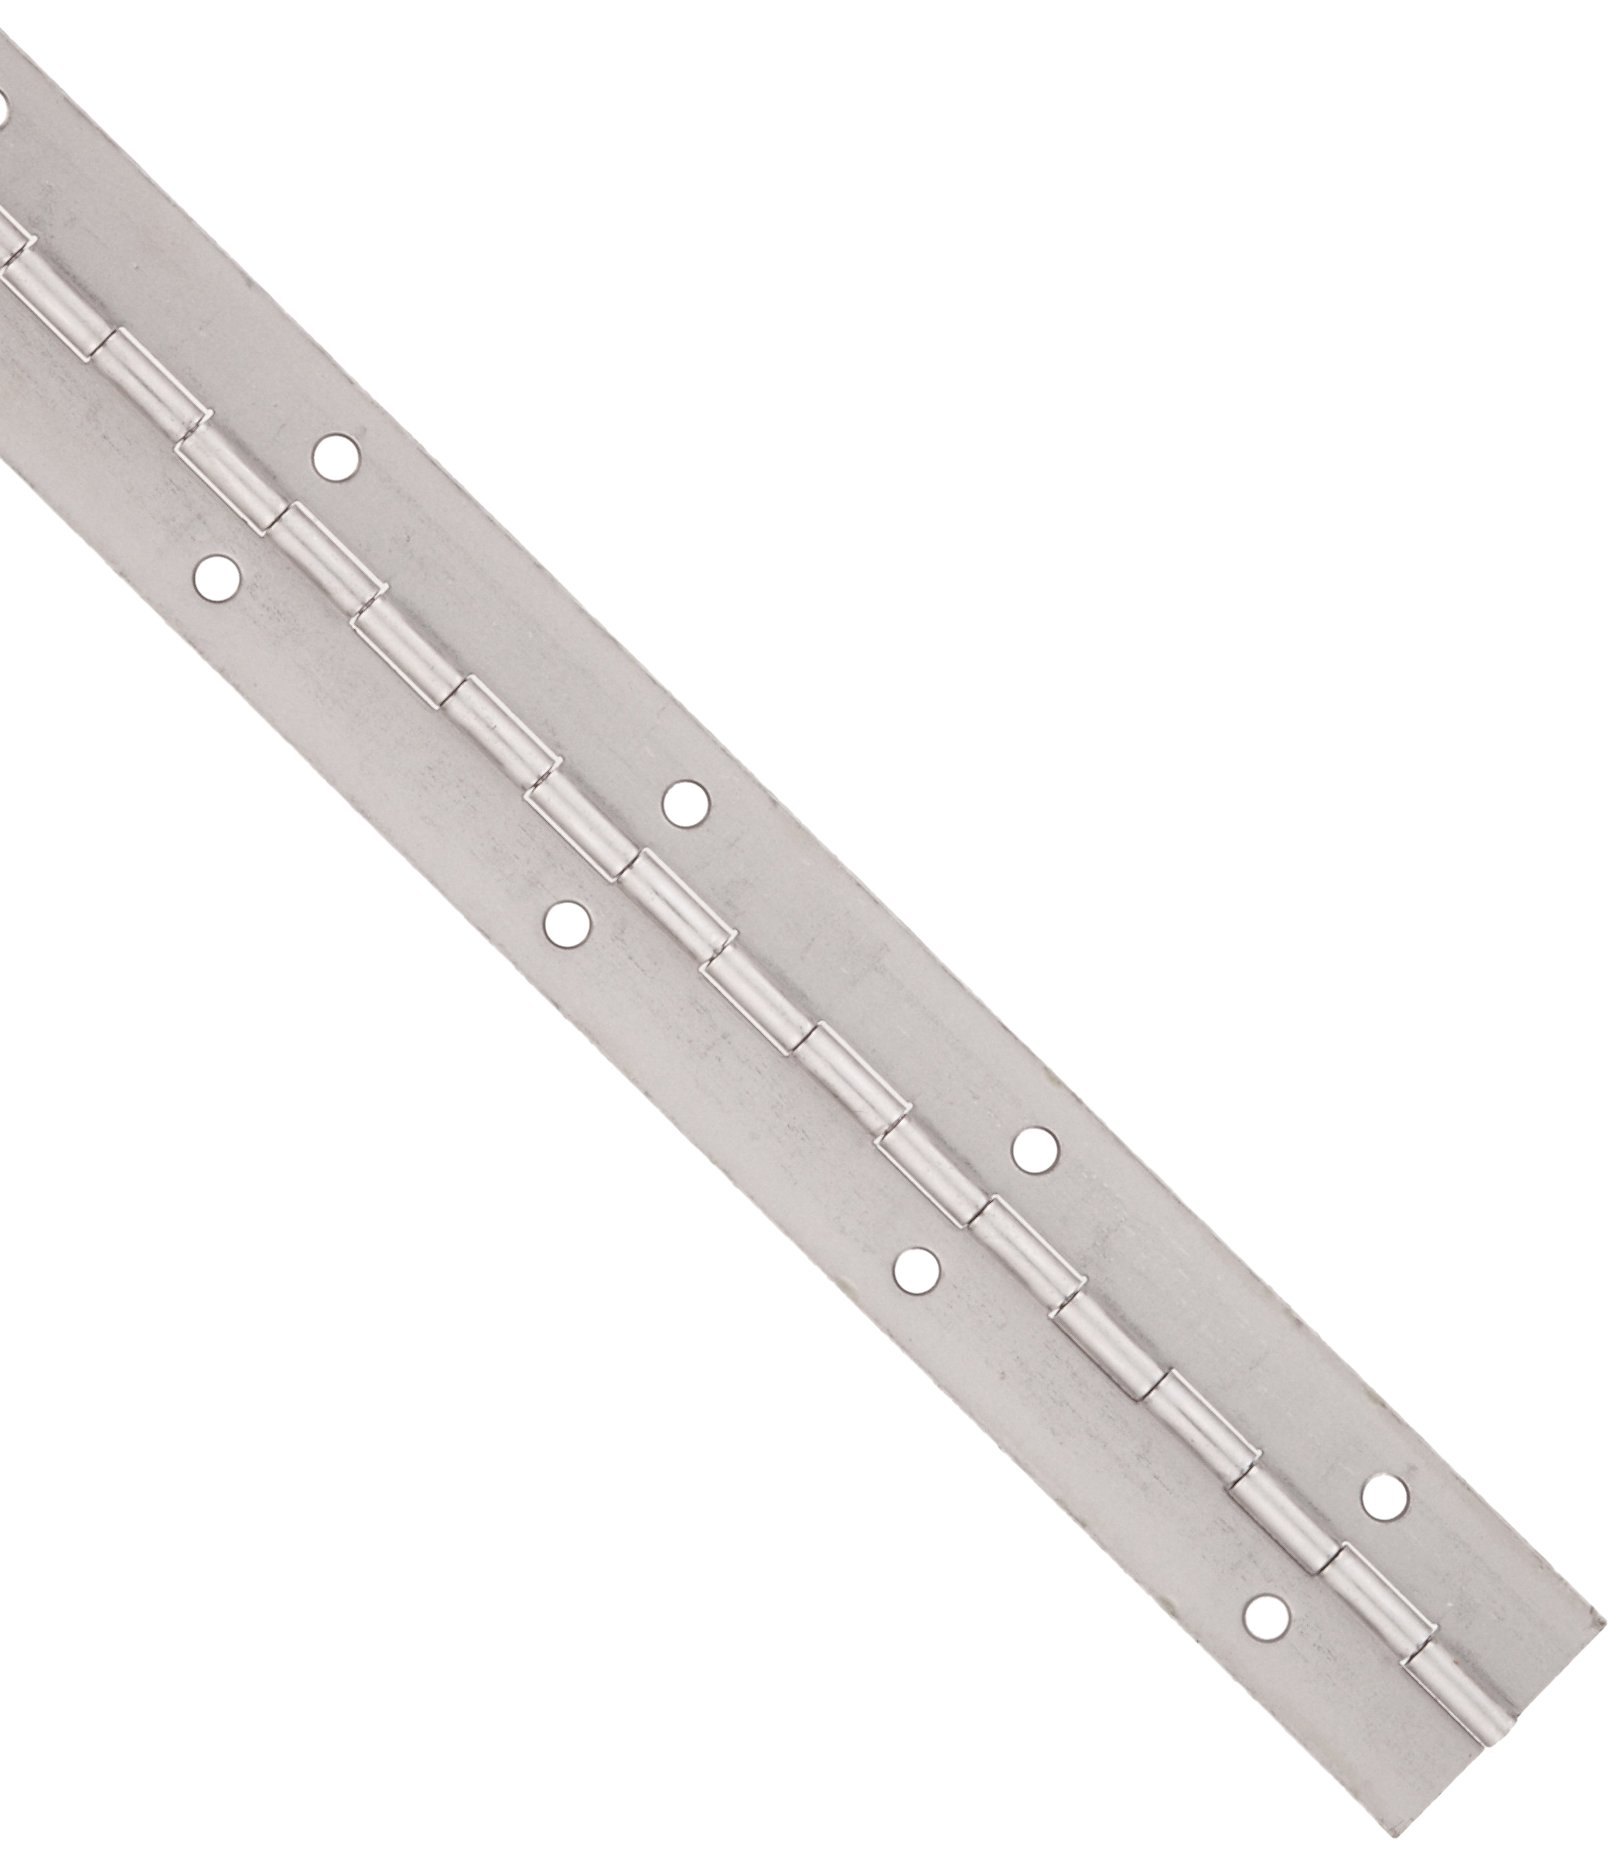 Steel Continuous Hinge with Holes, Unfinished, 0.06'' Leaf Thickness, 2-1/2'' Open Width, 1/8'' Pin Diameter, 1/2'' Knuckle Length, 8' Long (Pack of 1)